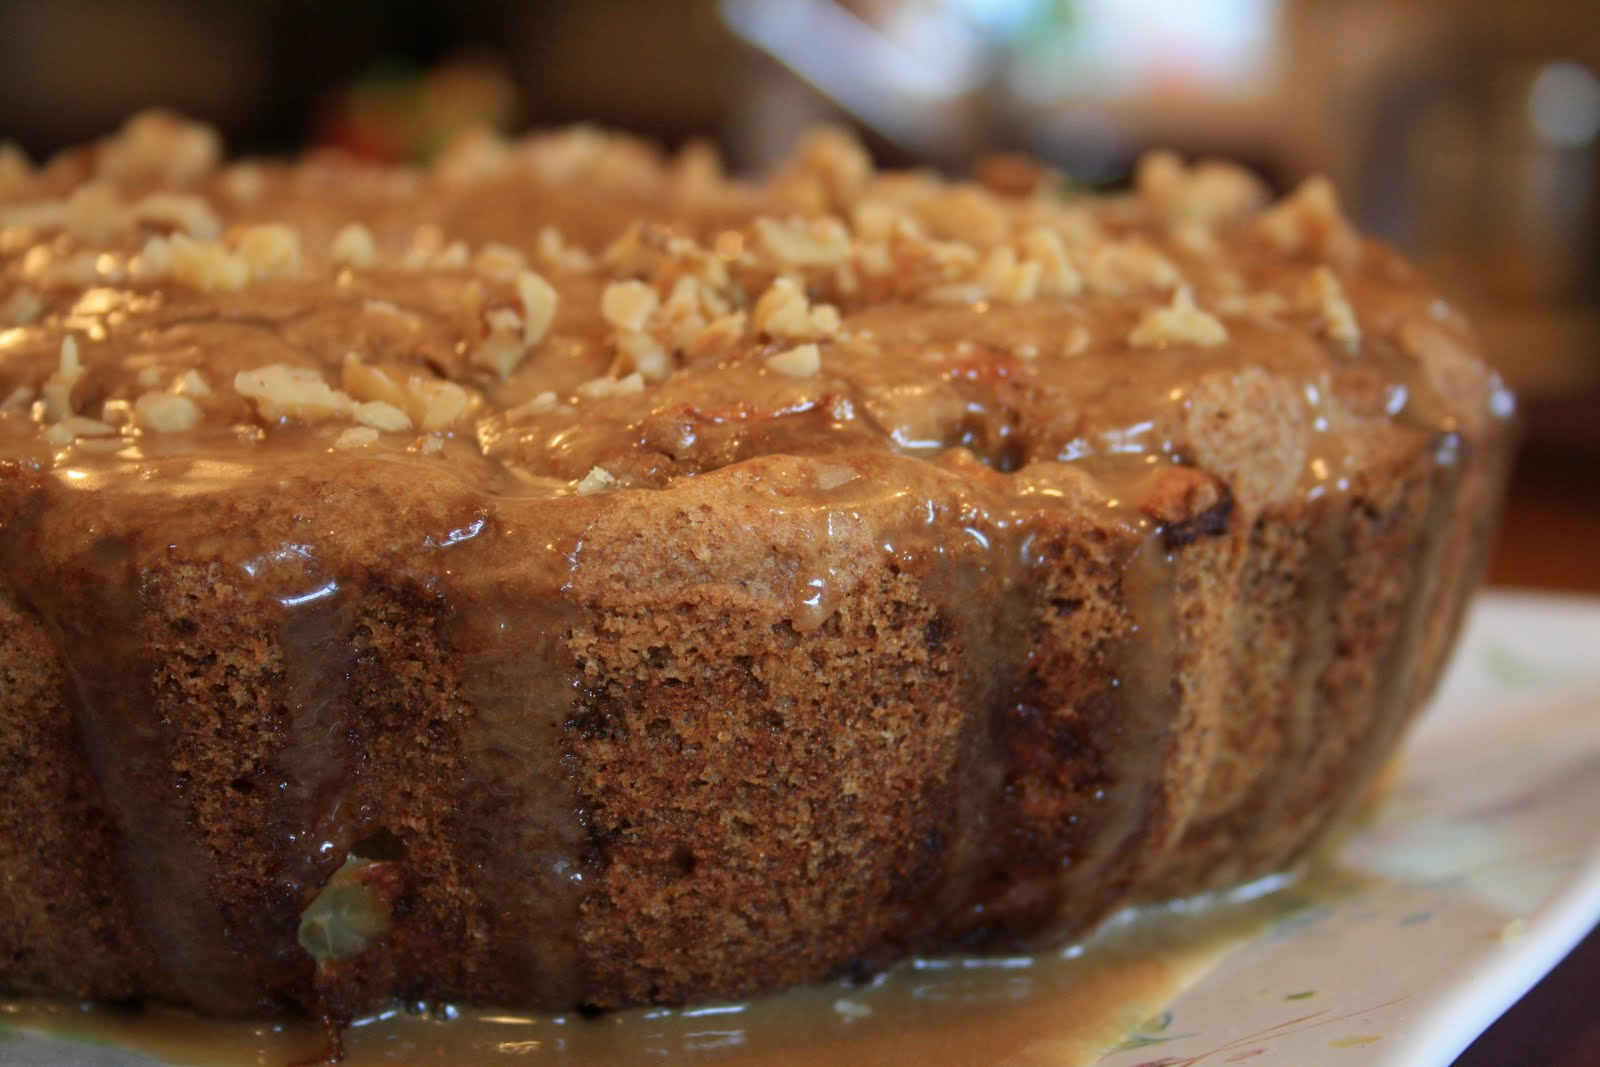 Meals with Michelle: Apple Spice Cake w/ Caramel Icing